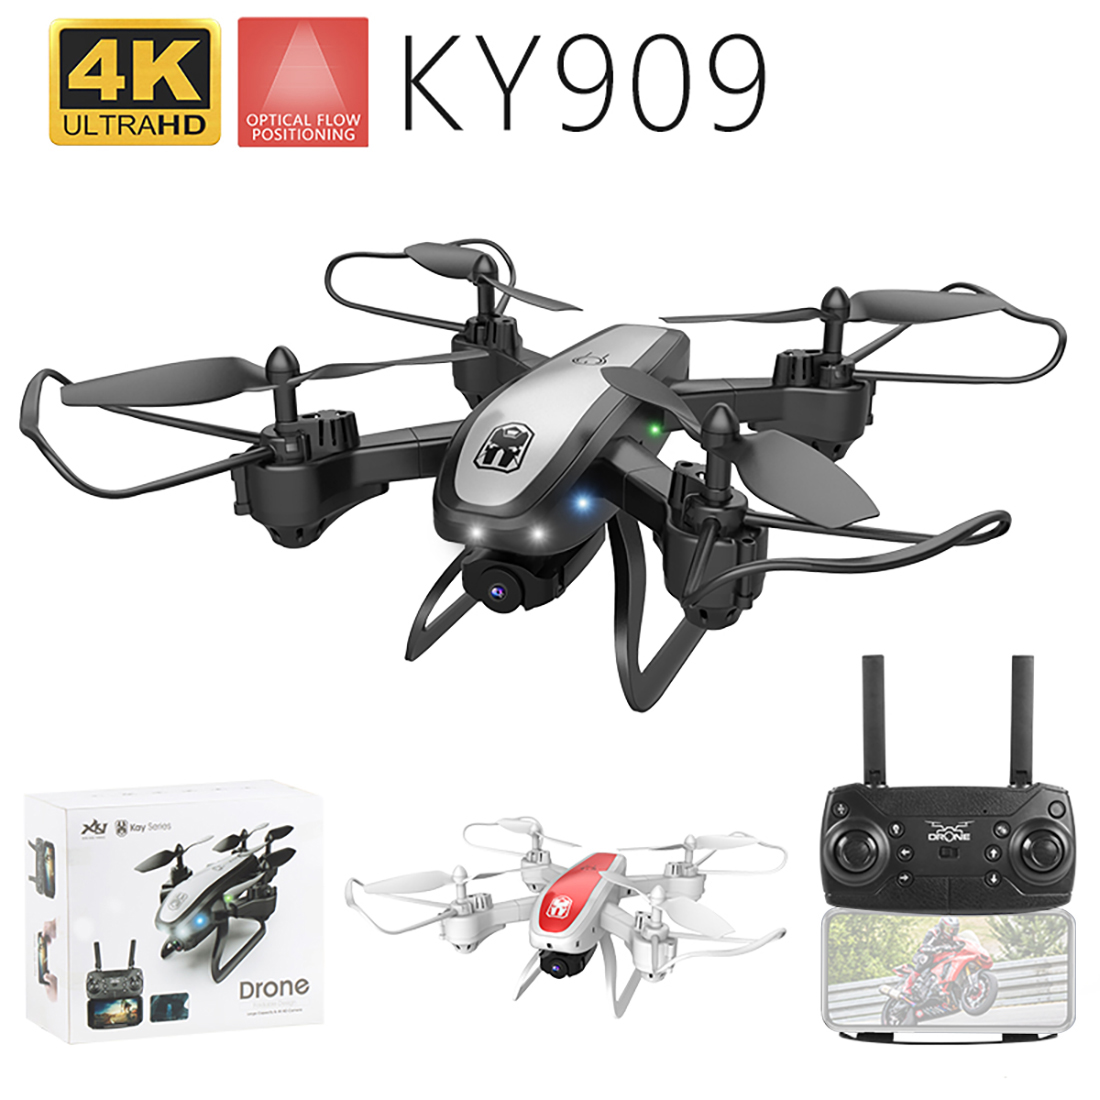 KY909 4K HD Camera <font><b>Drone</b></font> <font><b>FPV</b></font> WIFI Optical Flow Positioning RC Aircraft Foldable Altitude Hold Long Battery Life Kids Toys image